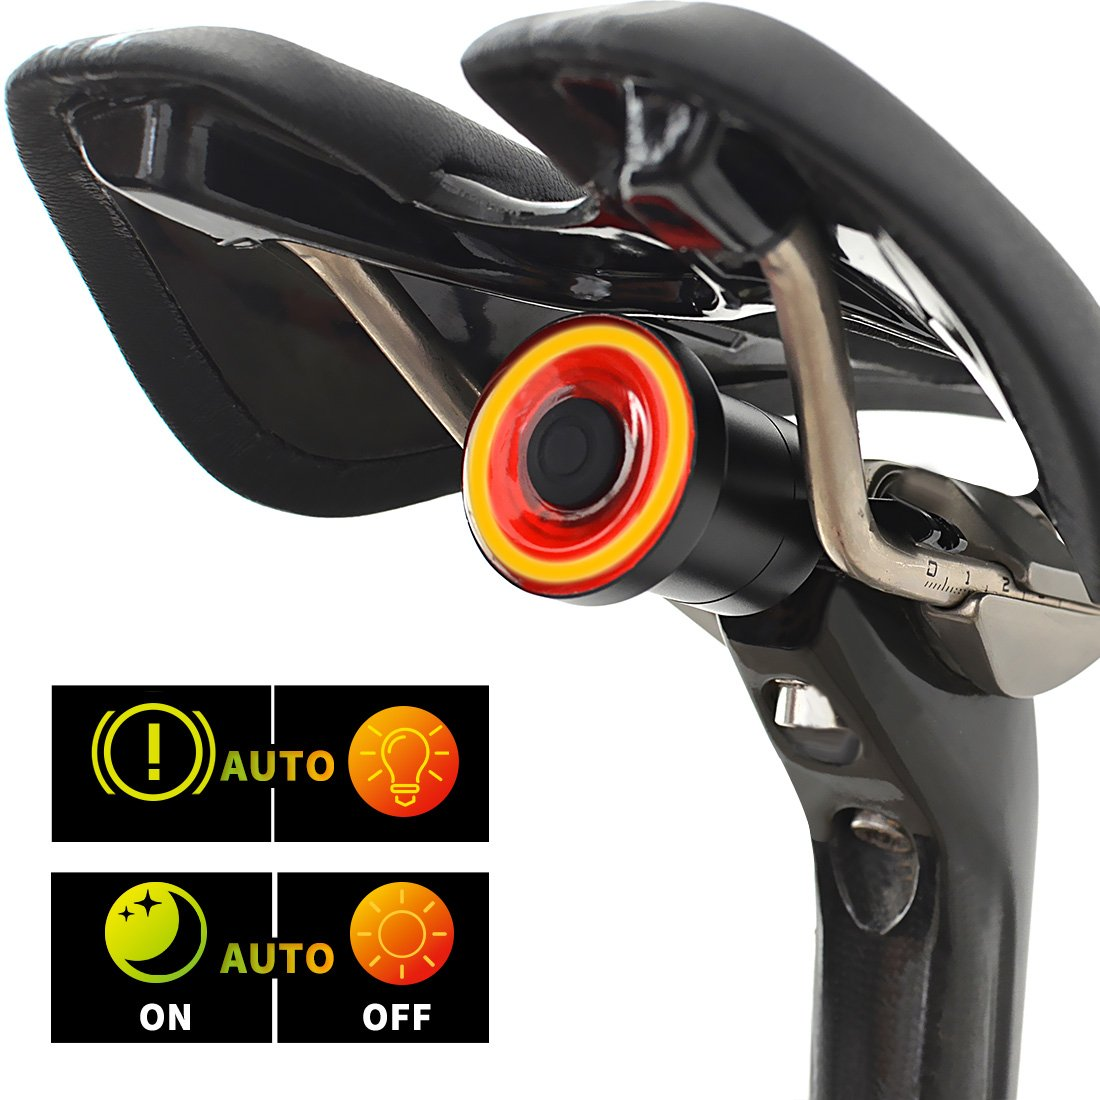 Smart USB Rechargeable Bike Tail Light,Ultra Bright,Auto Start/Stop,Brake Sensing,IPx6 Waterproof,Full Alu CNC Chassis,Cycling Safety Commuter Light,Easy To Install.